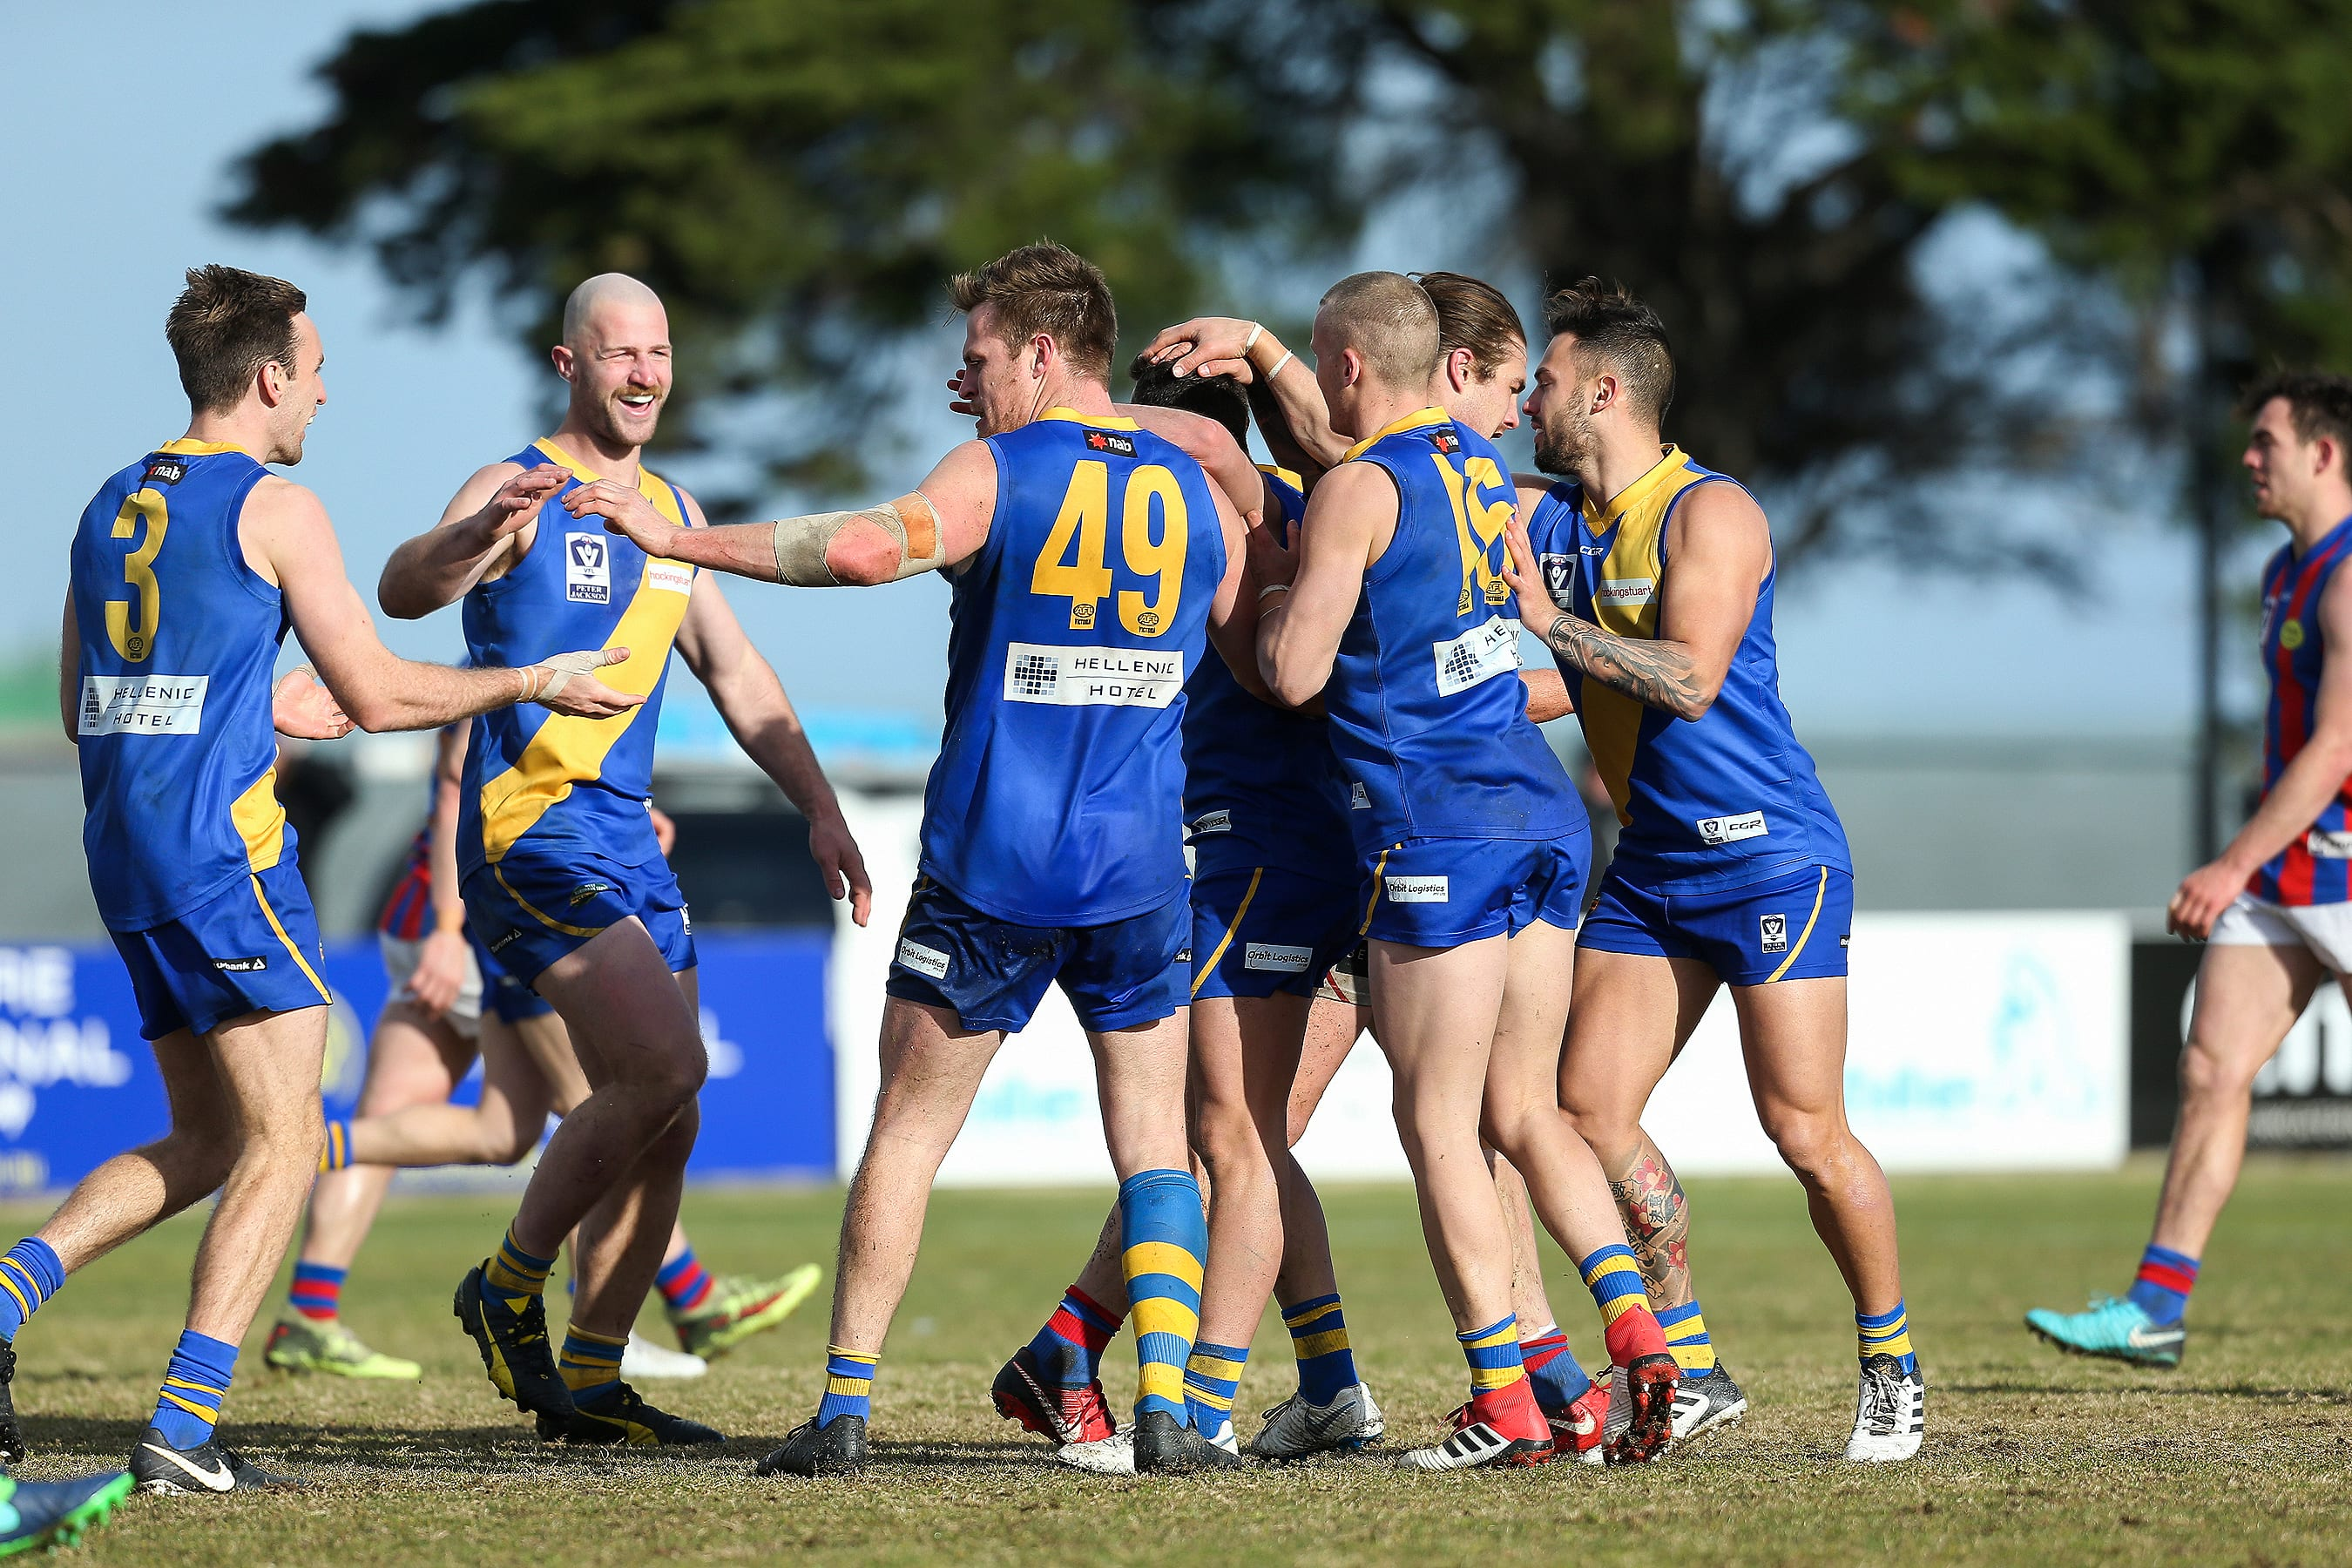 b55c437070c 2019 VFL Practice Matches Announced - Williamstown Football Club